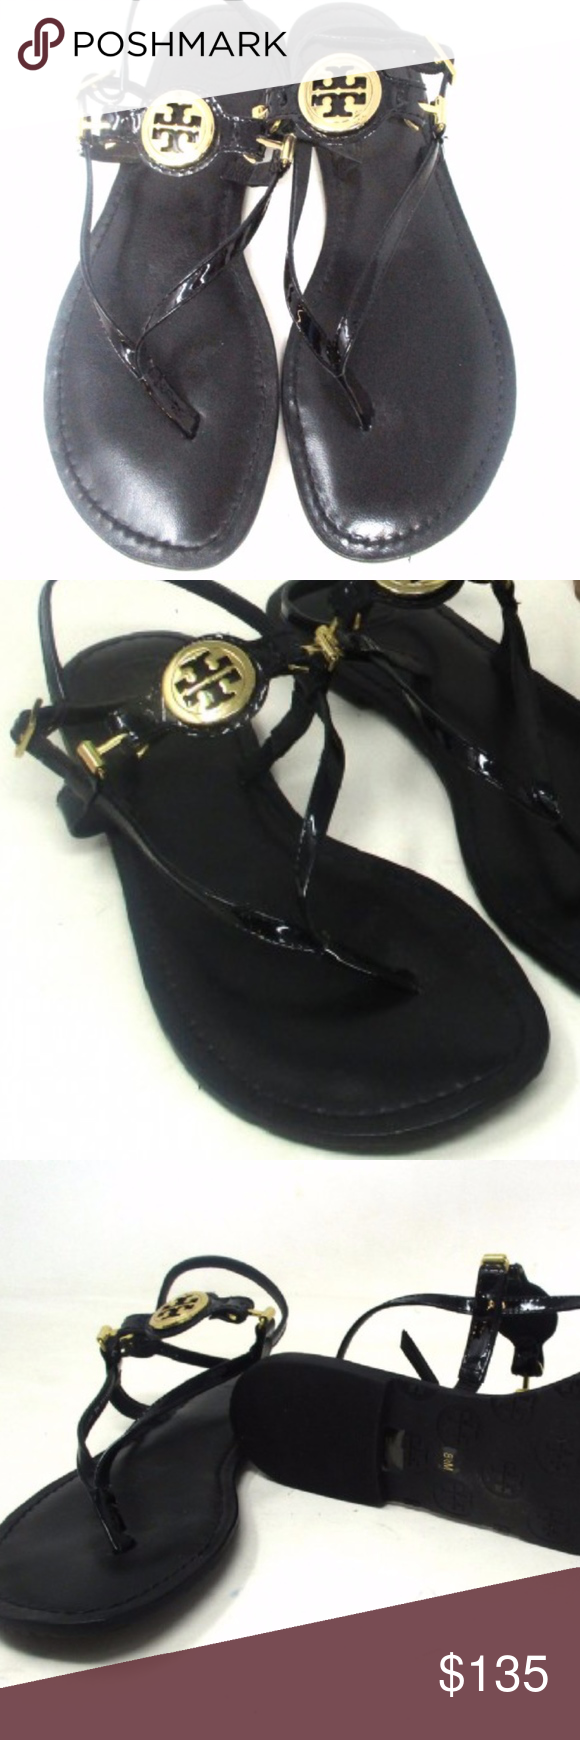 07da52dd6c5 Authentic TORY BURCH Dillan Sandals Excellent preloved condition Tory Burch  black patent leather sandals with golden logo hardware. Size 8.